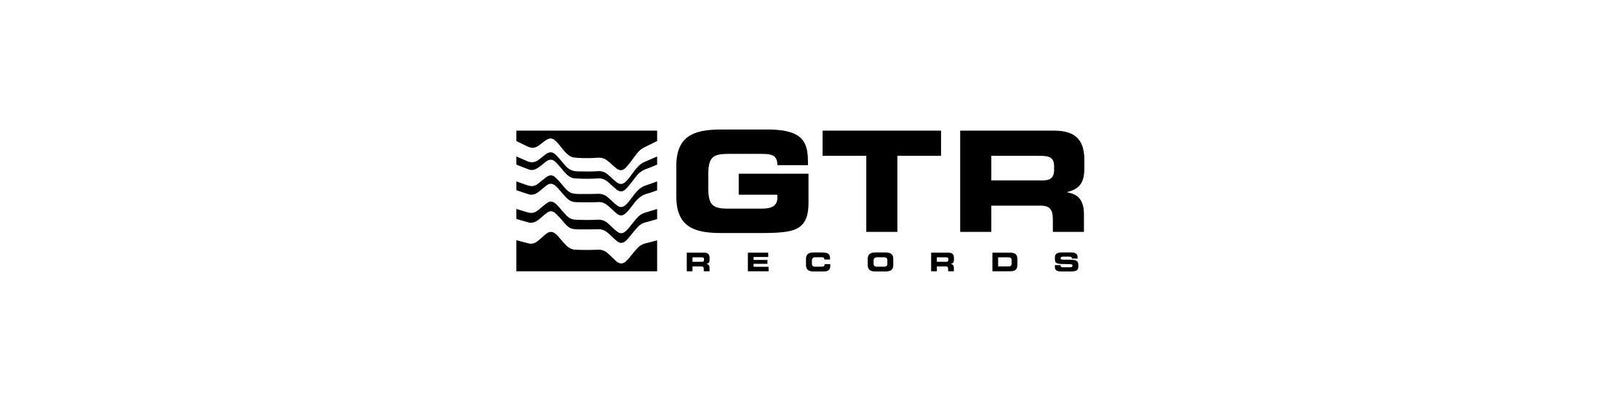 GTR Records Music